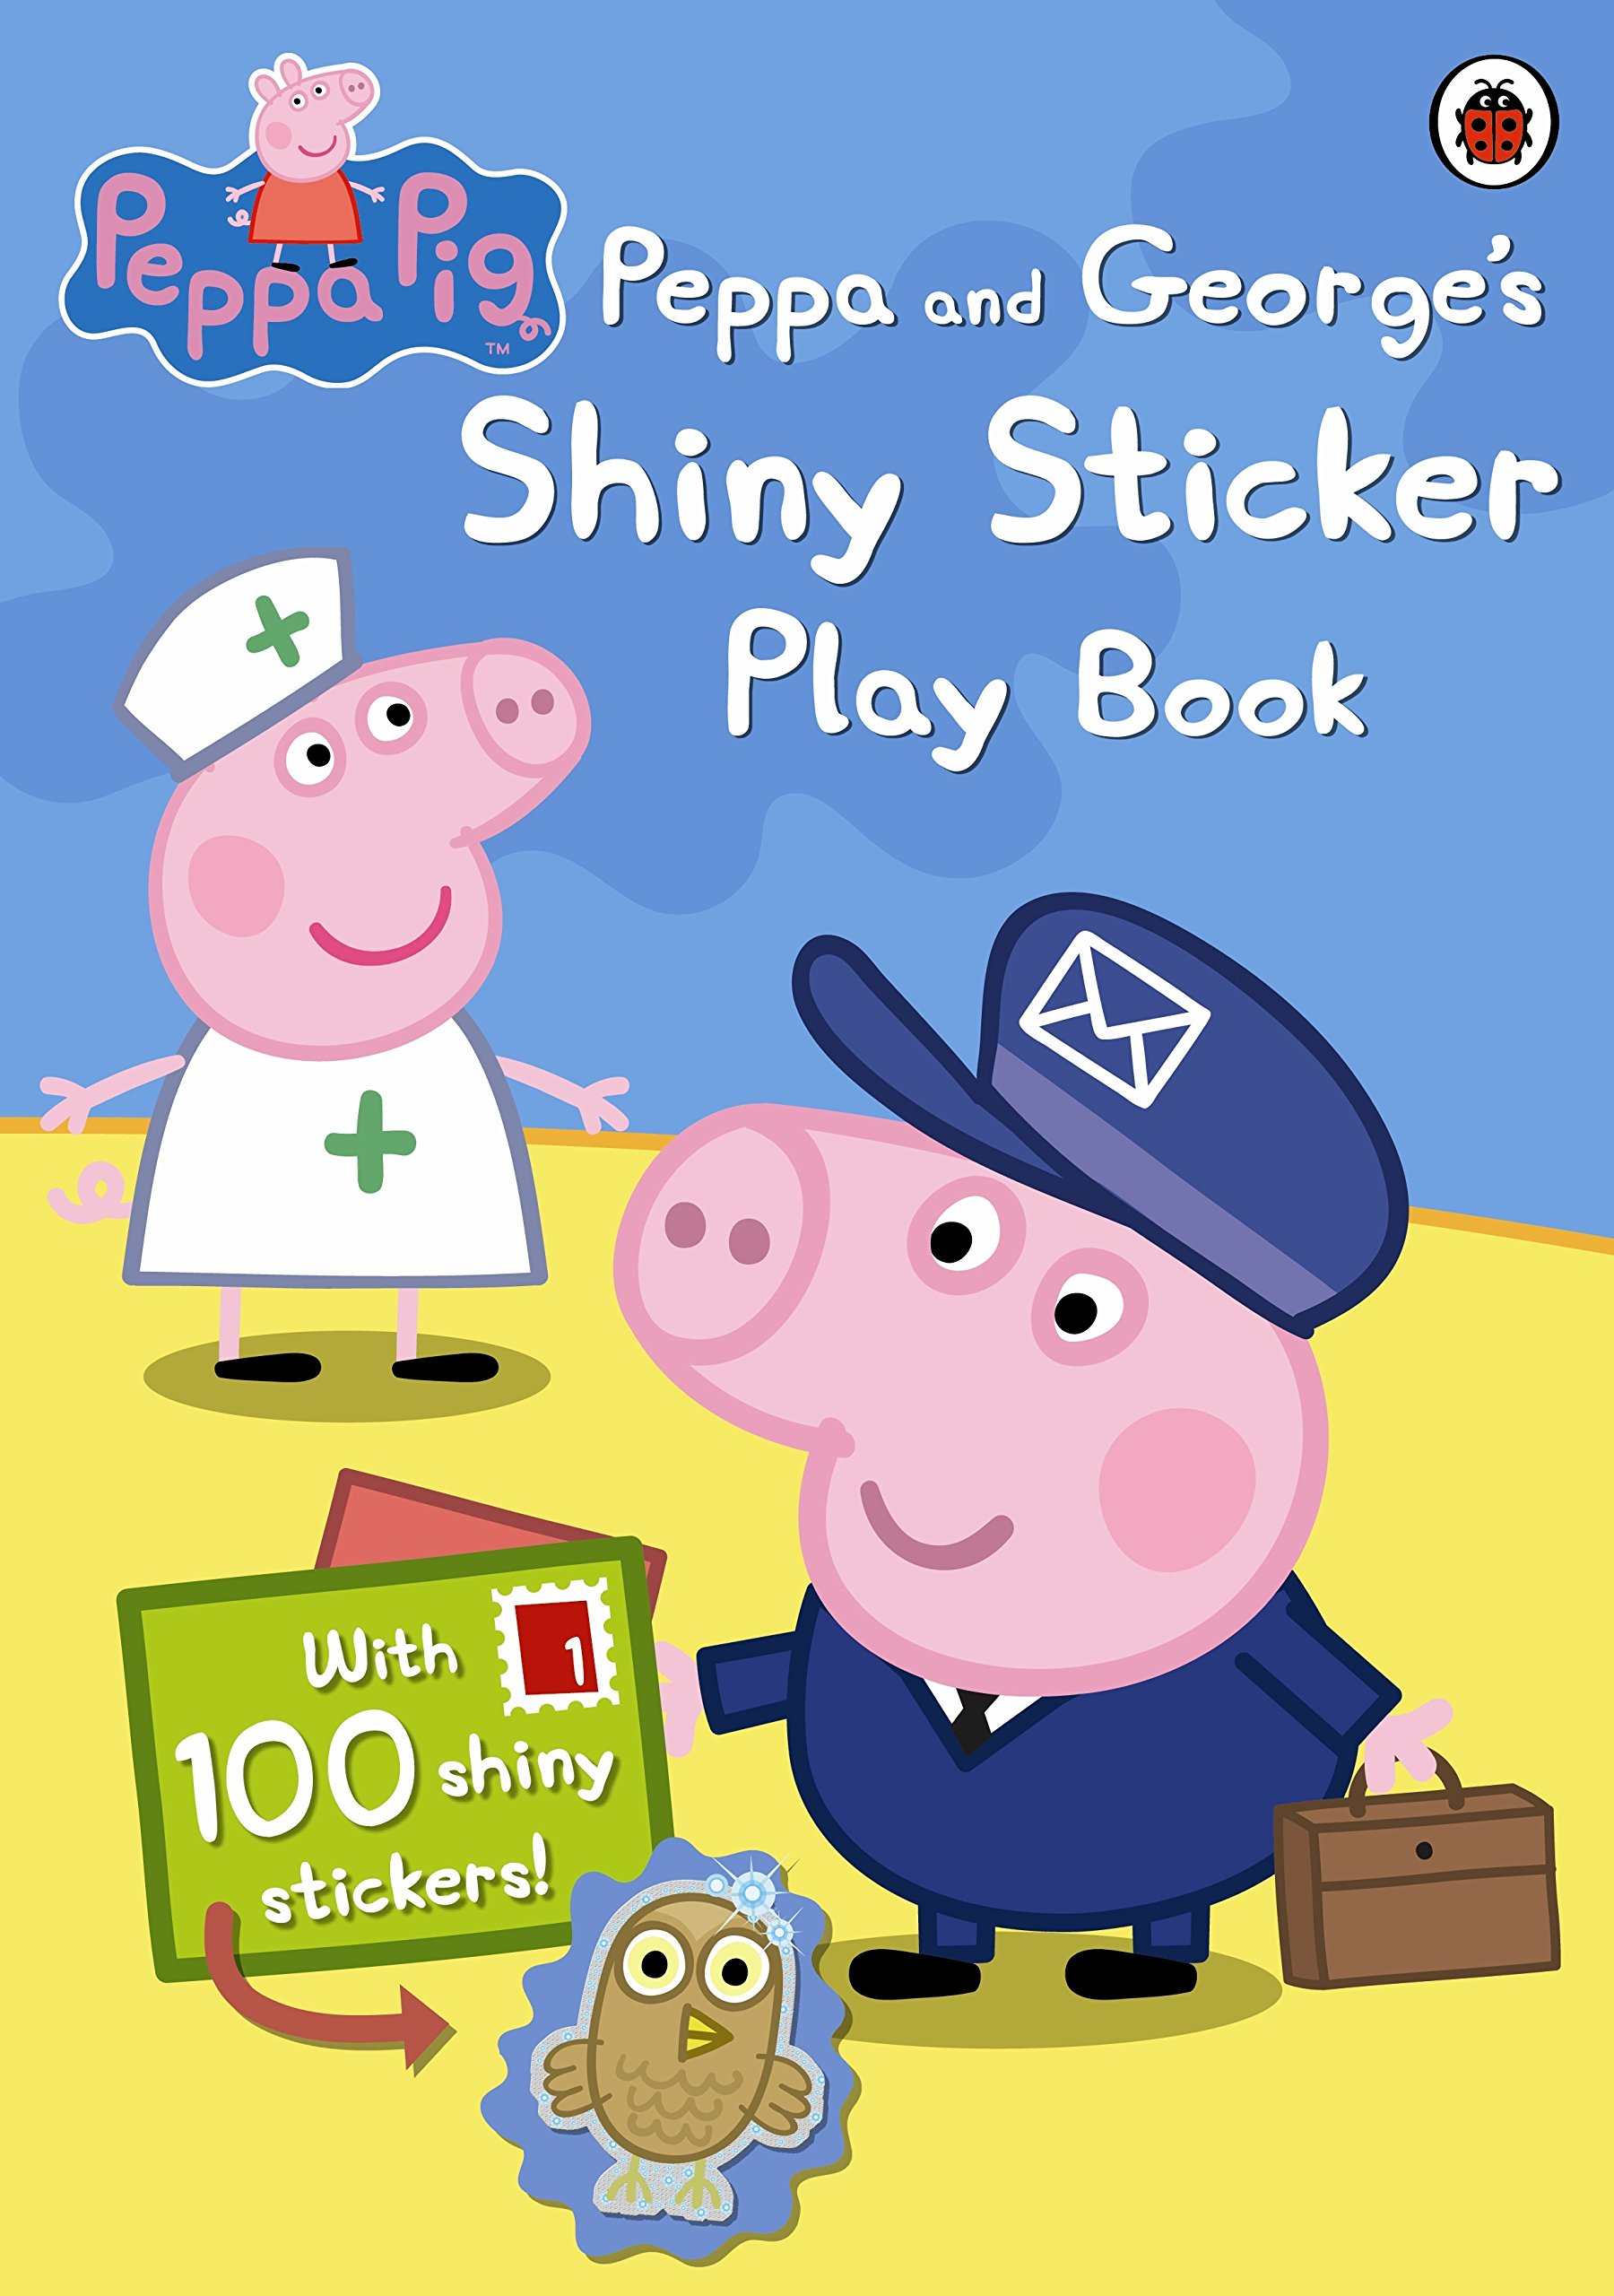 PEPPA AND GEORGES SHINY STICKER PLAY BOOK